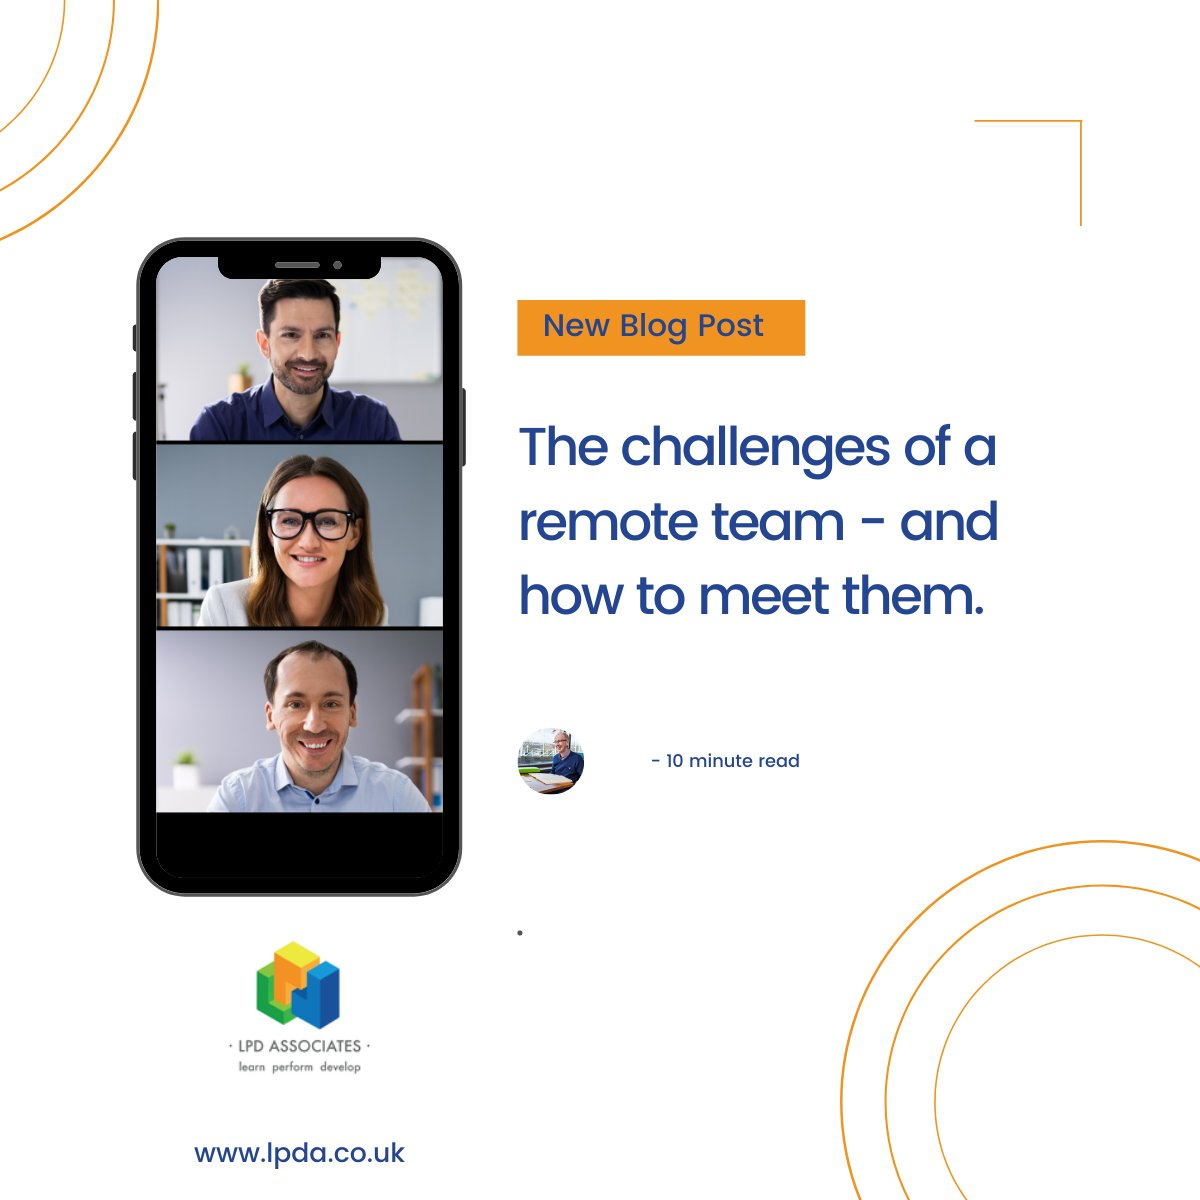 This month we have been speaking a lot about employee engagement and how you can work with remote team. We've given you a lot of information over the last few weeks so thought we would compile it into an easy to read blog for you.  Have you learned anything new this month?